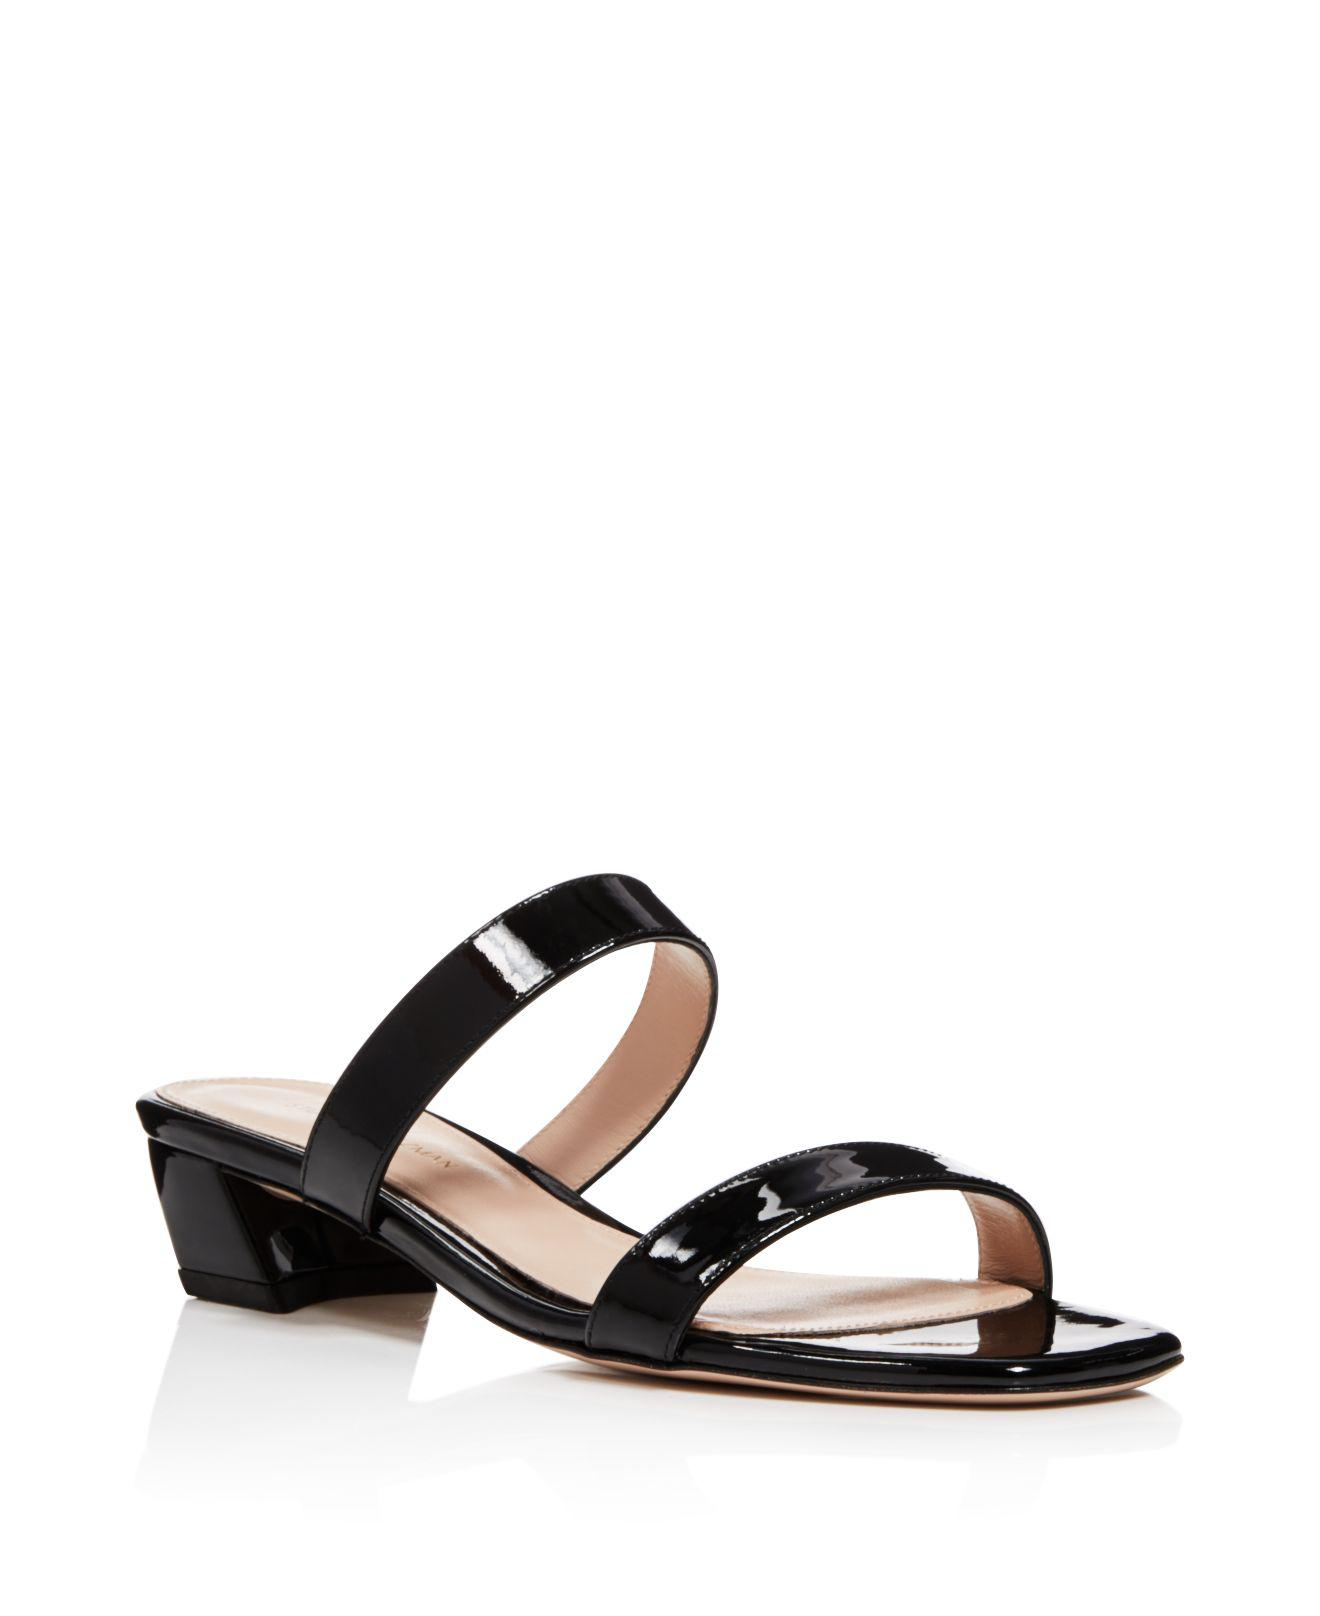 discount brand new unisex Stuart Weitzman Patent leather Slide Sandals low cost online cheap new arrival cheap outlet store Y4dTm6Zmj